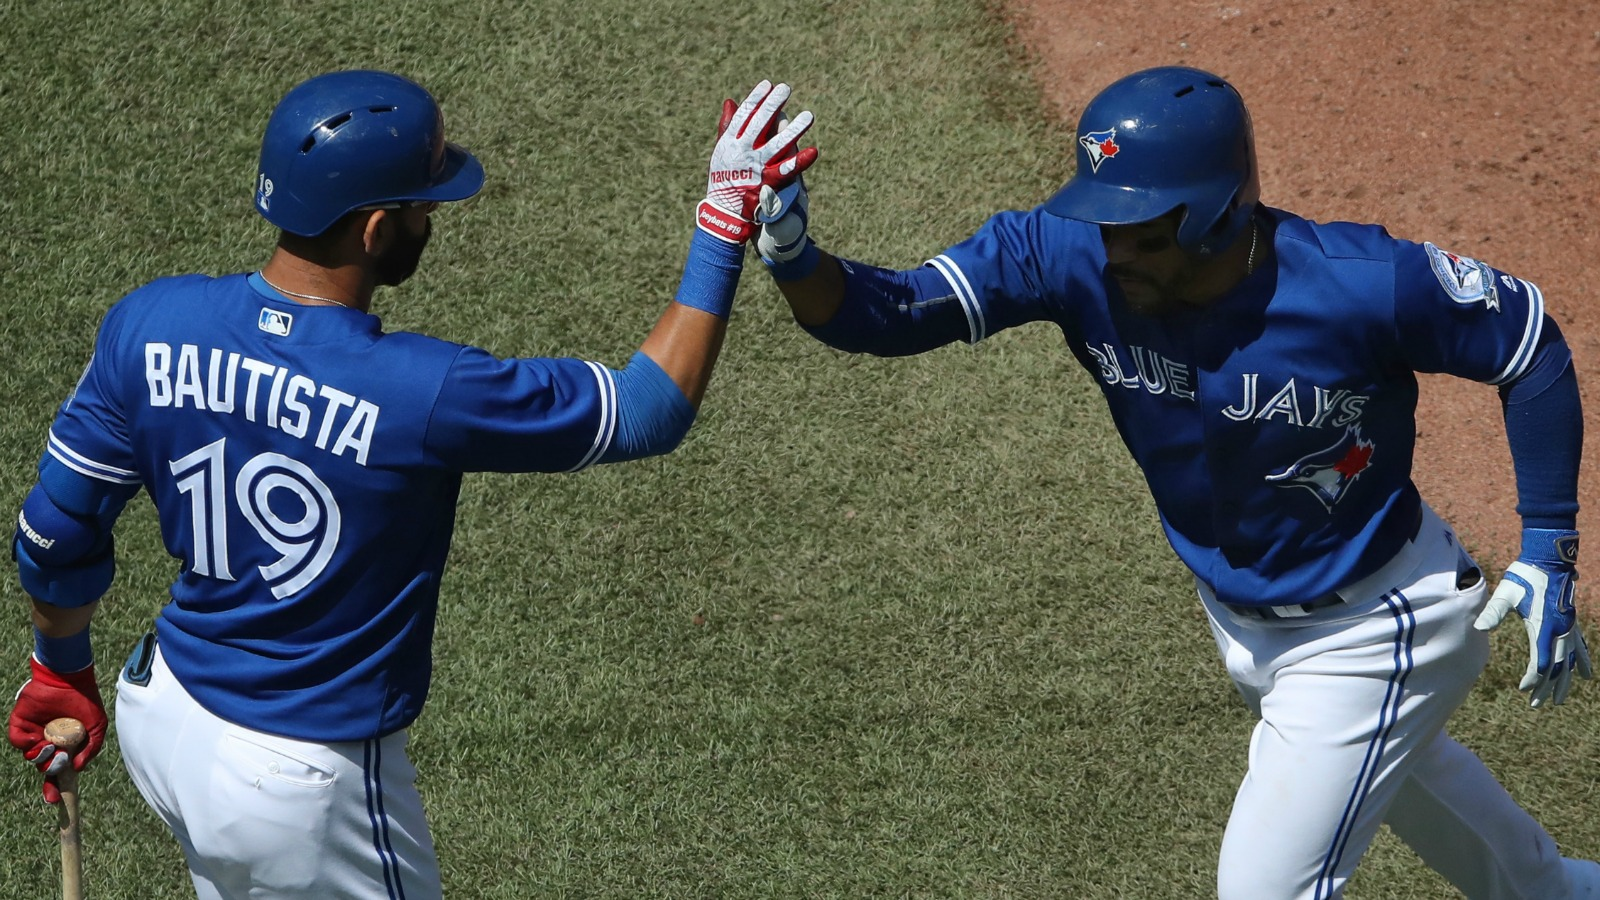 The Blue Jays overpower the Orioles to take the lead in the AL East